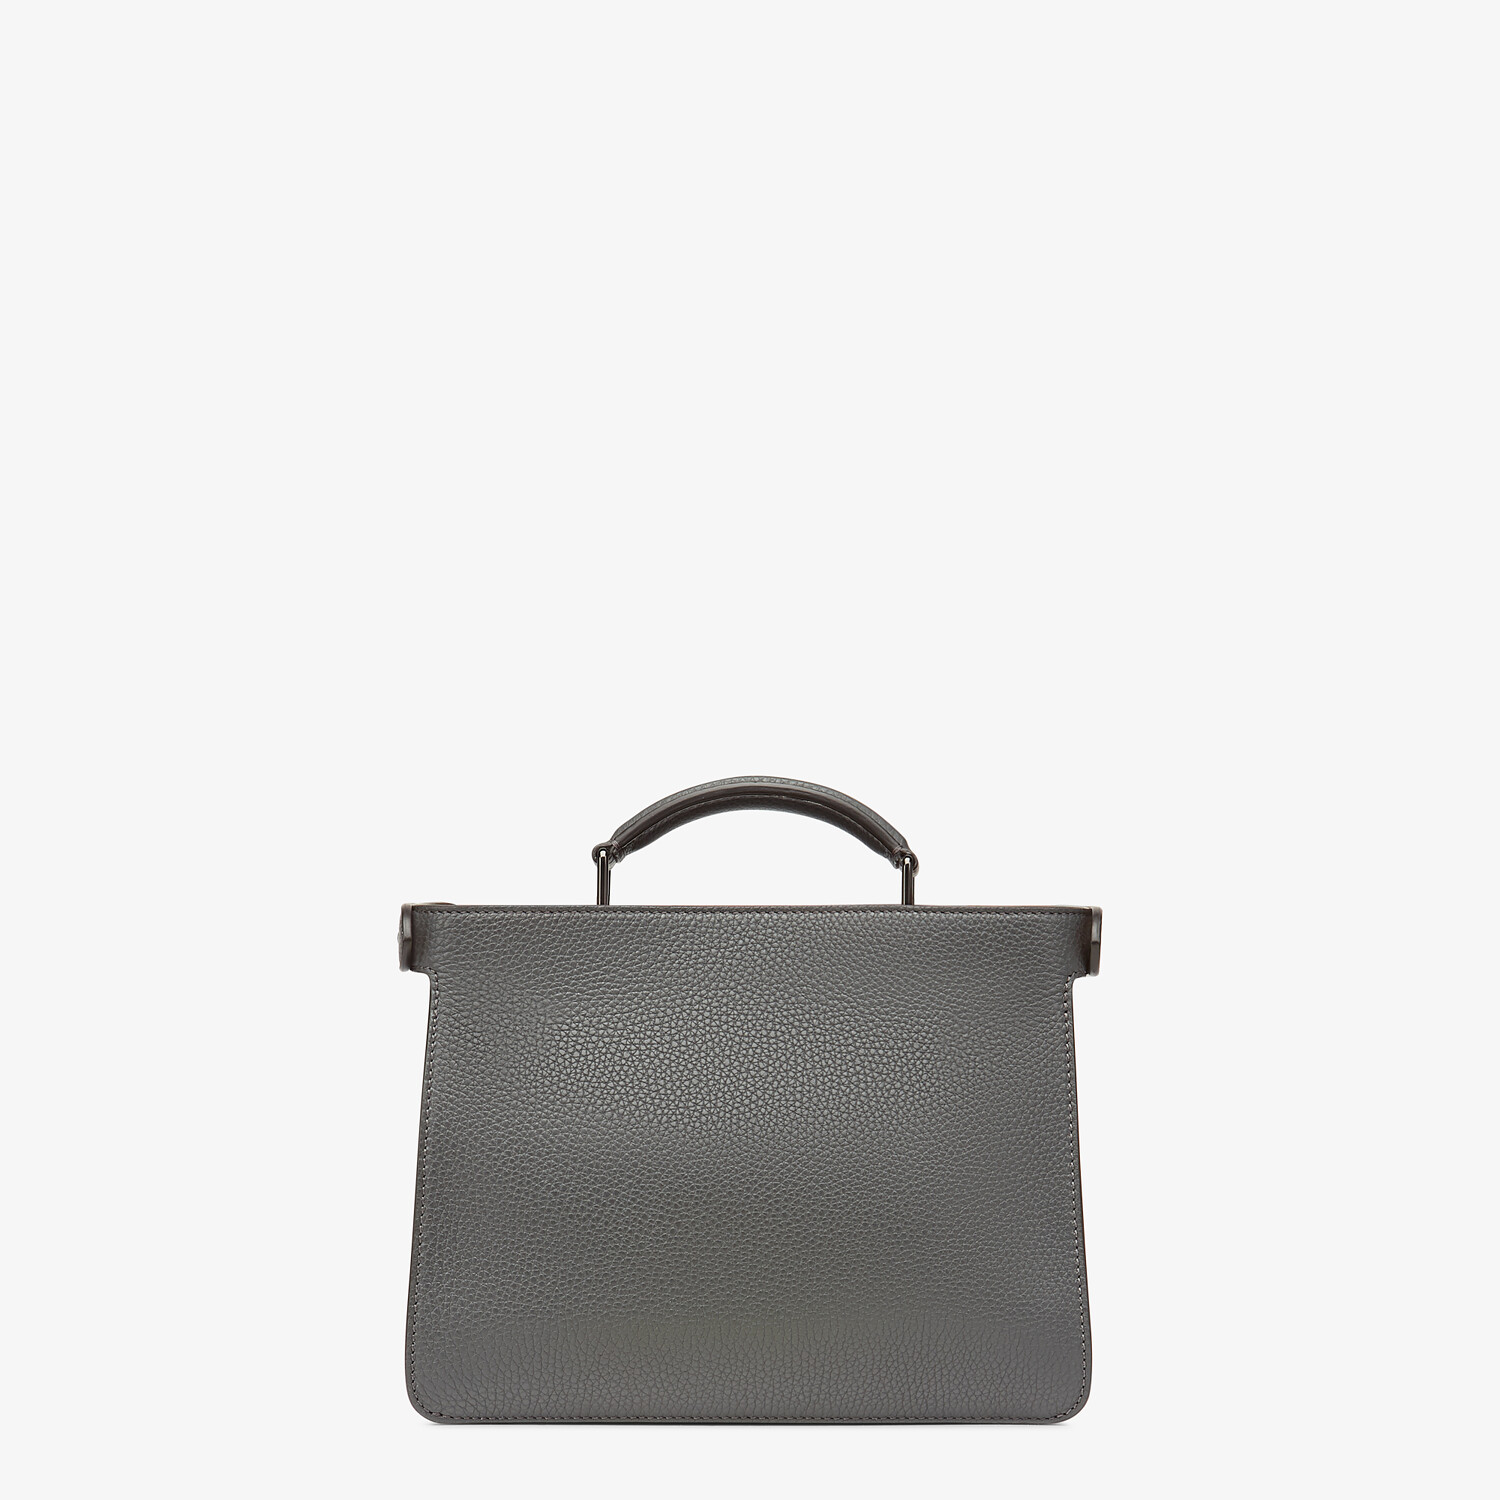 FENDI PEEKABOO ISEEU MINI - Gray leather bag - view 4 detail